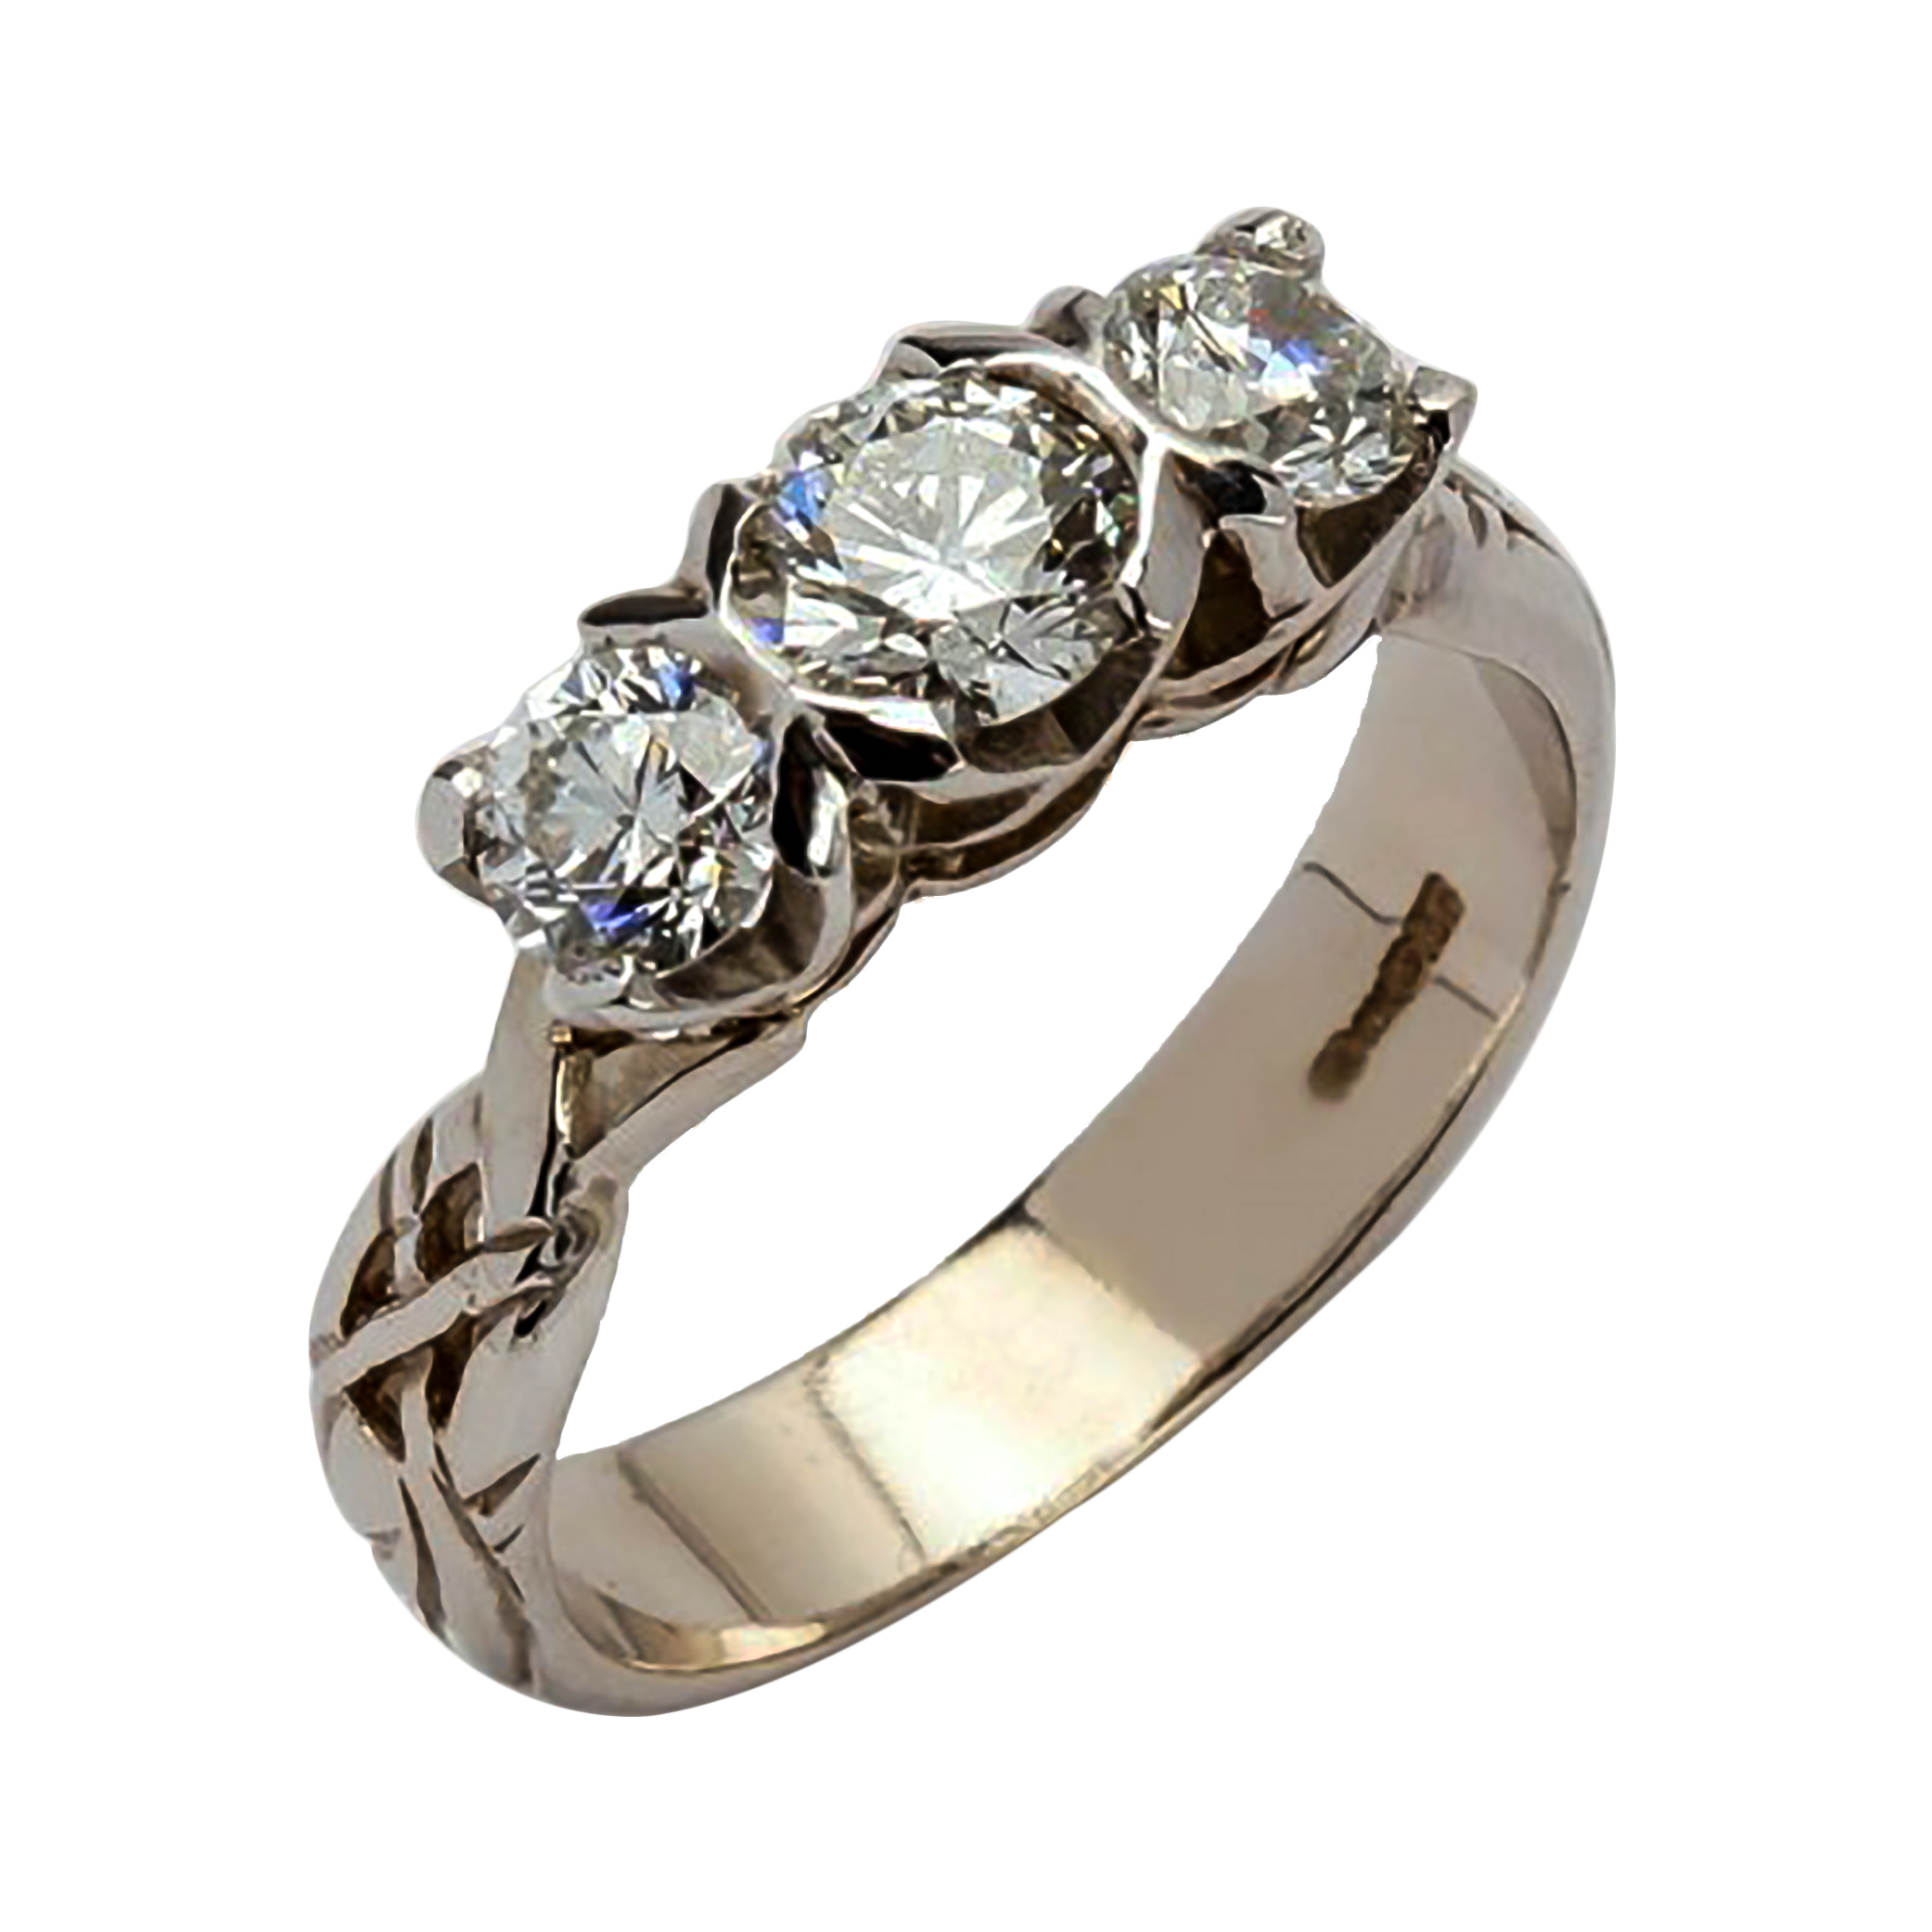 band jewelers boucheron rings diamond jewellery regent ring of lovely white gold wedding